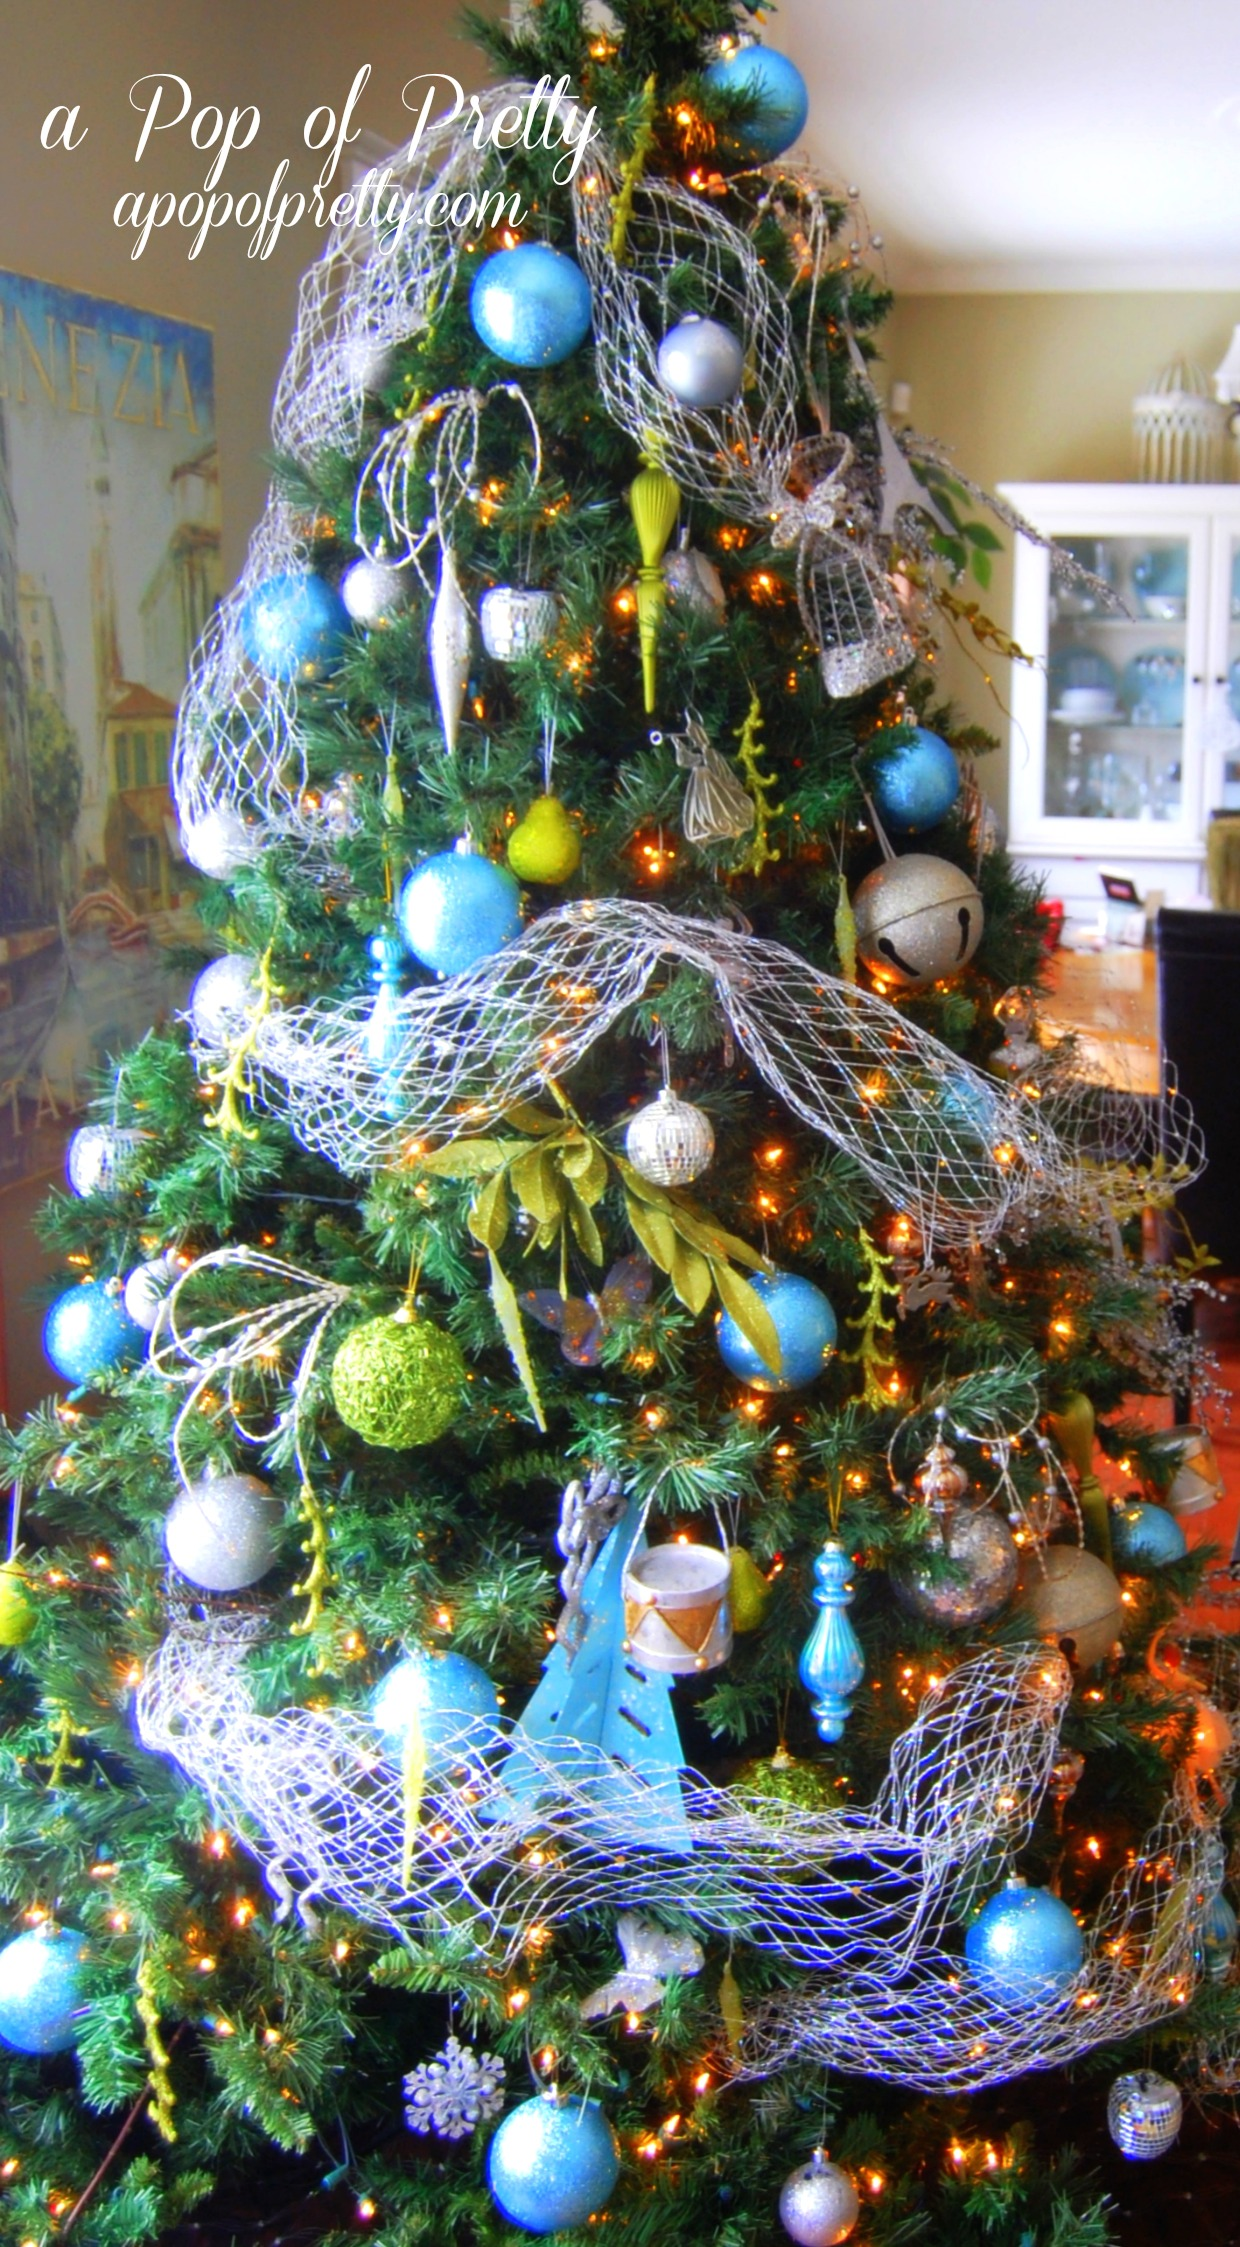 Turquoise christmas tree decorations a pop of pretty for Decoration xmas tree